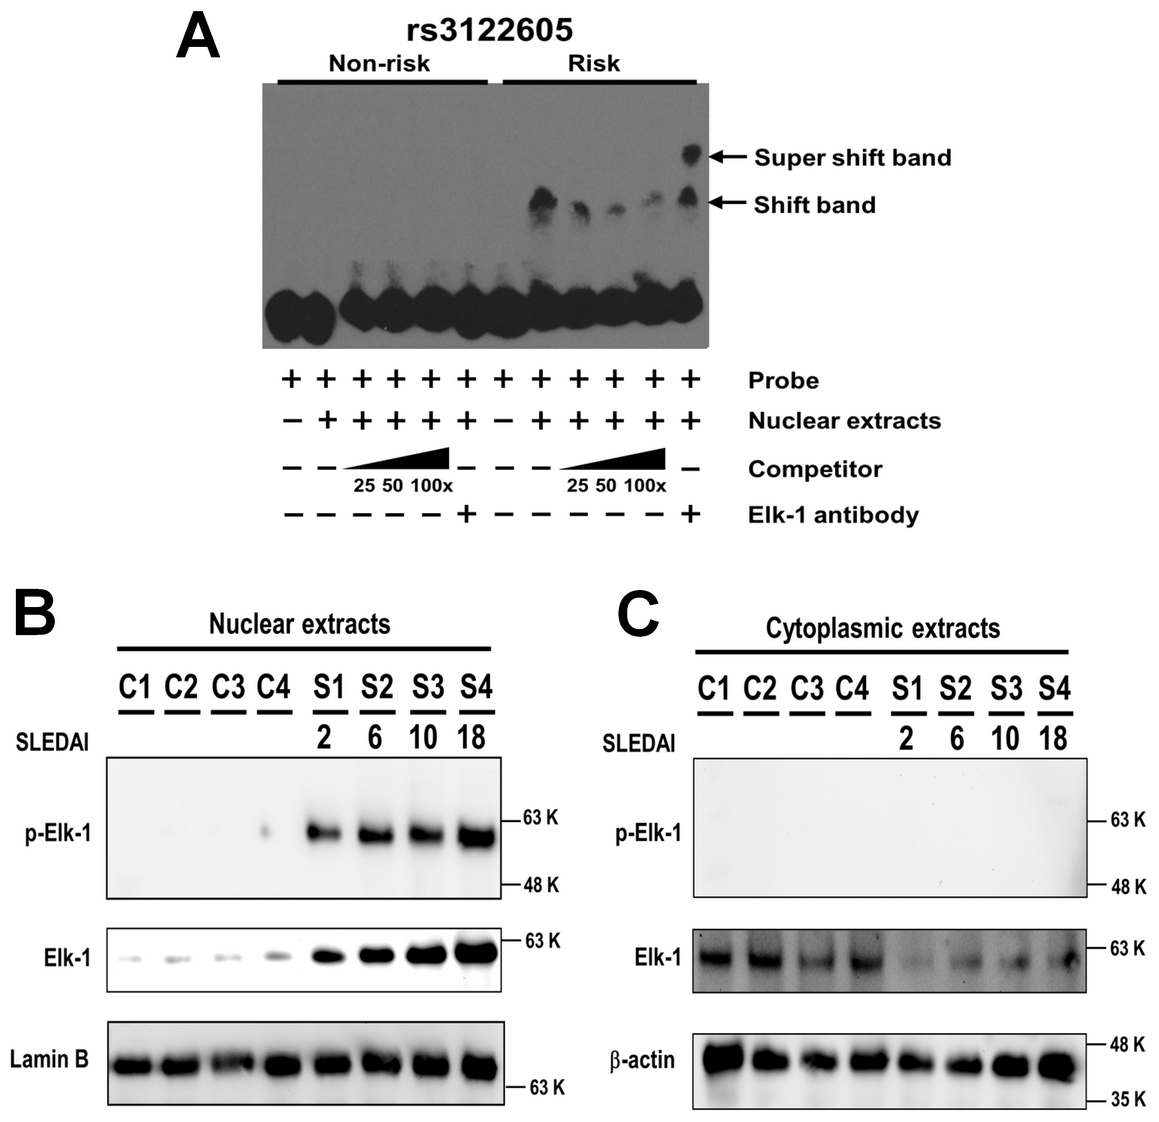 Preferential binding of rs3122605-risk allele to Elk-1, which is a transcription factor activated in peripheral lymphocytes of SLE patients.